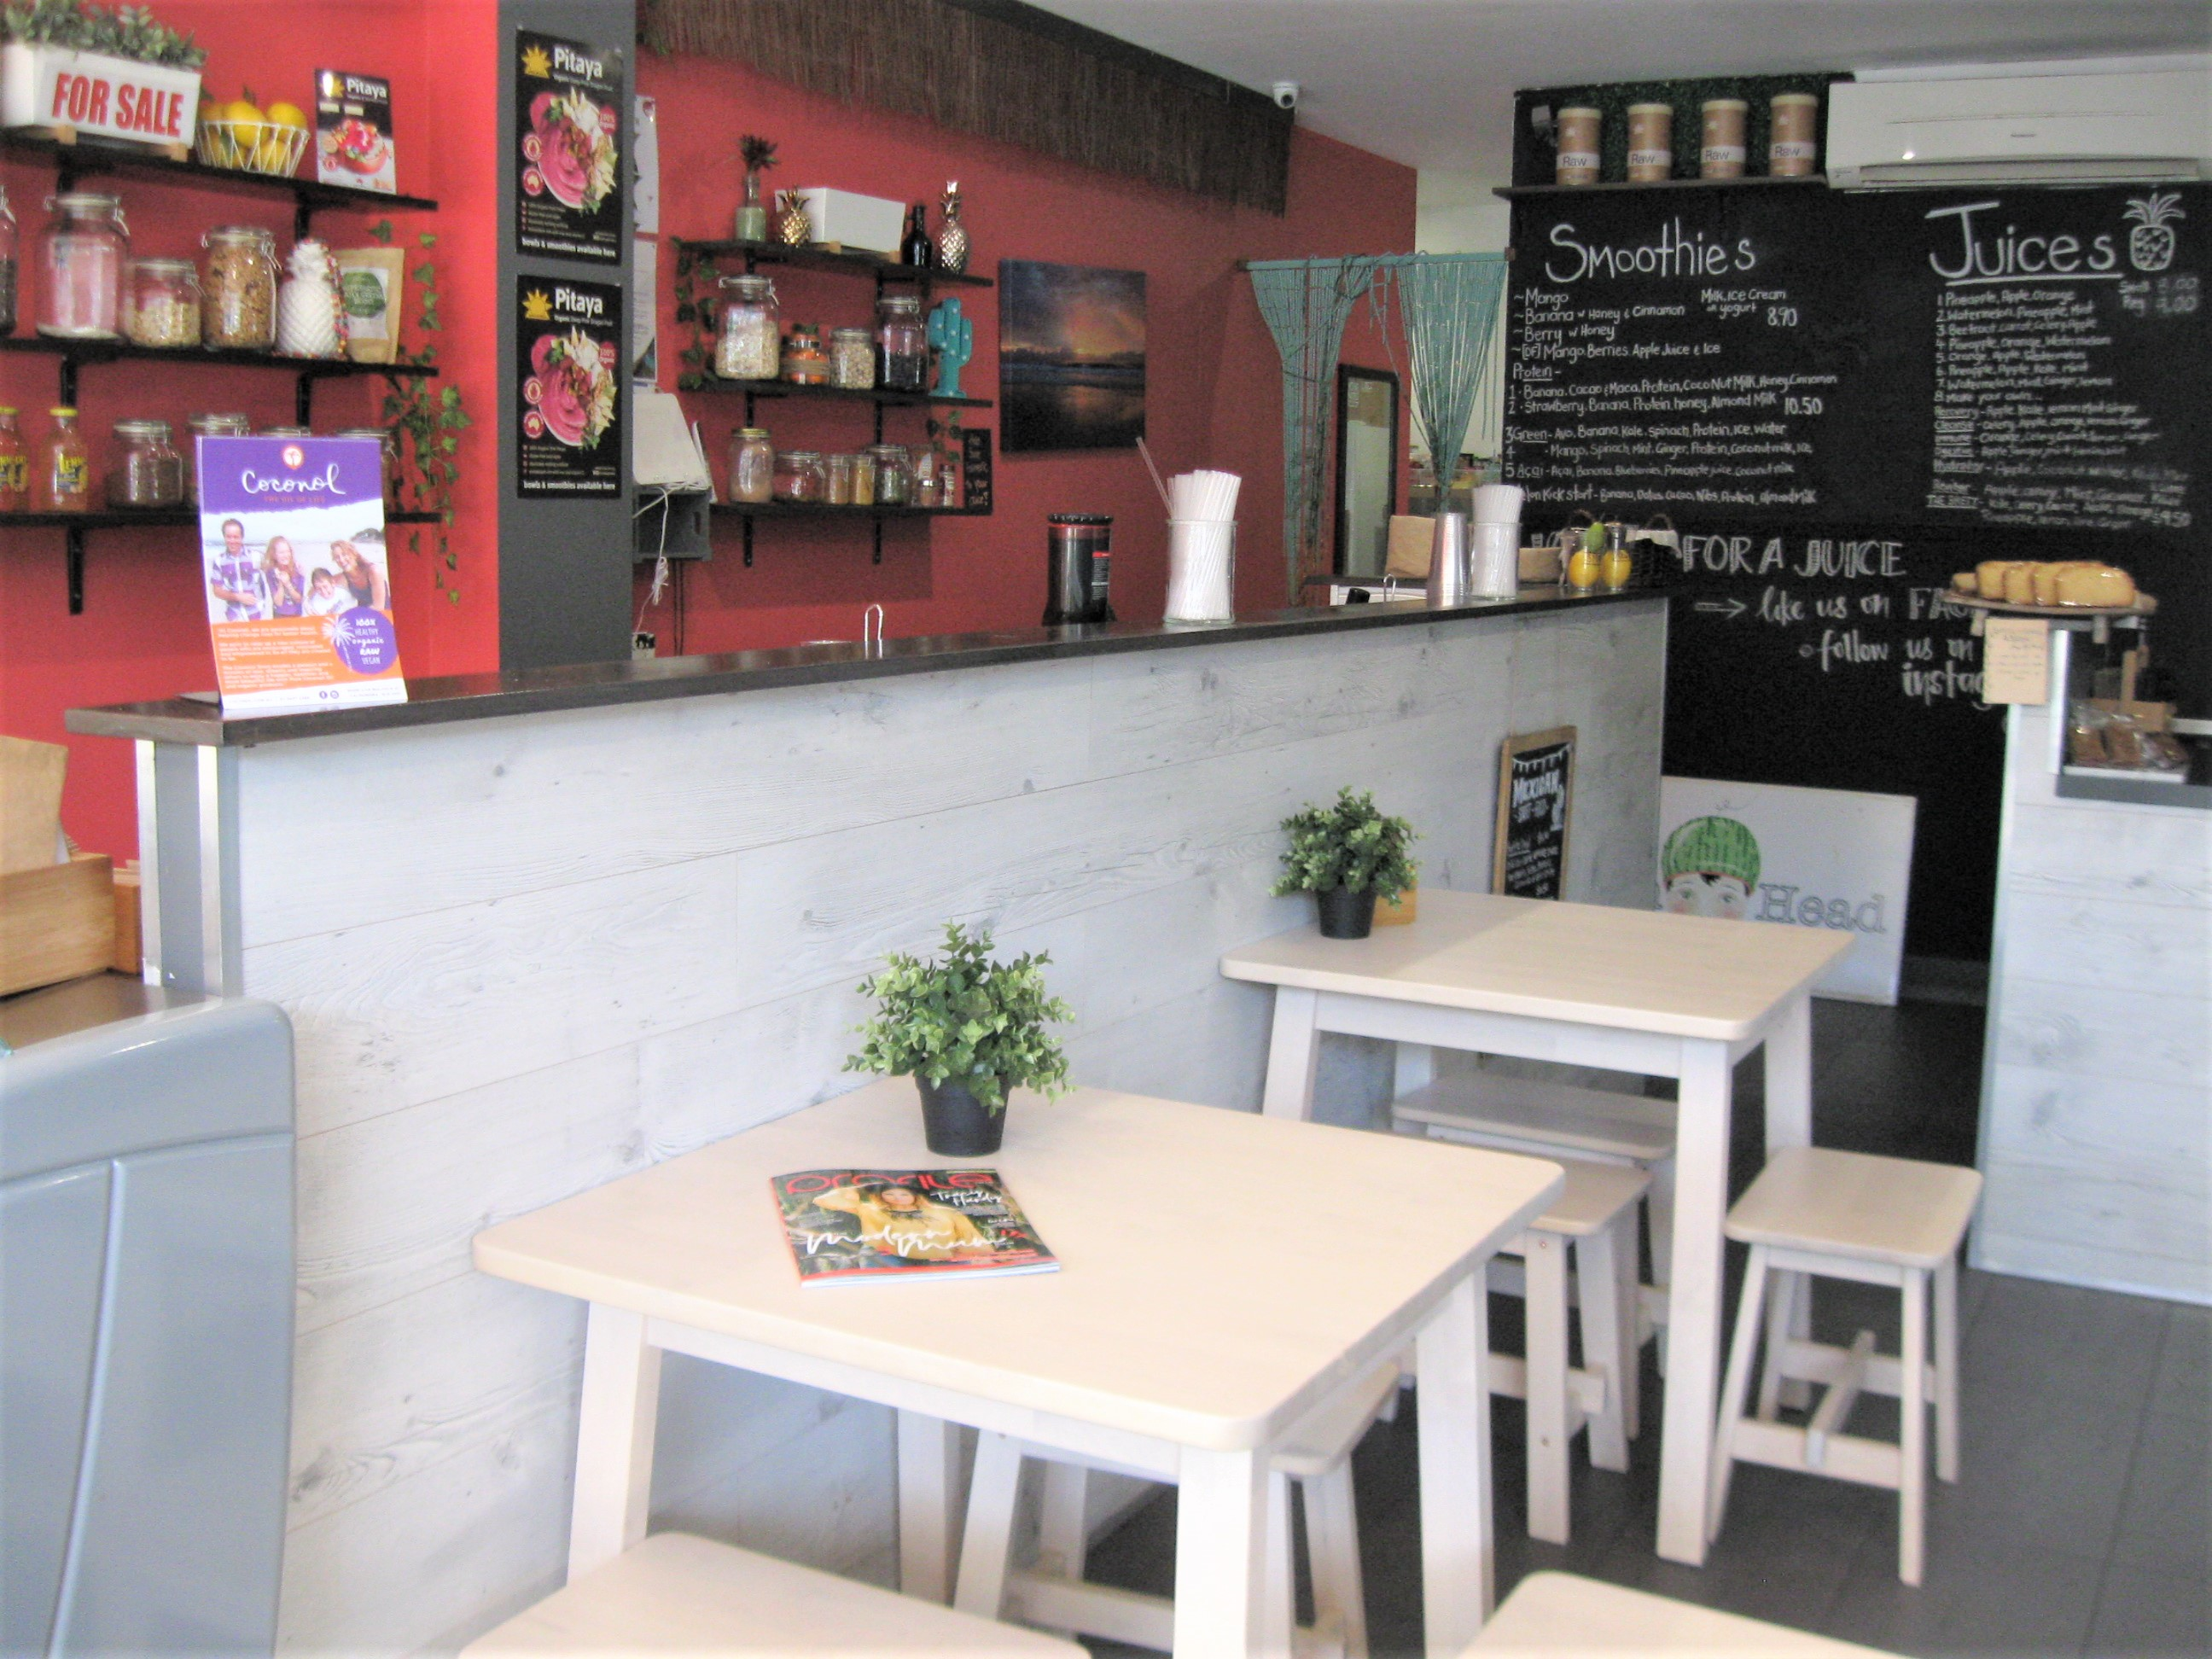 Juice Bar and Cafe